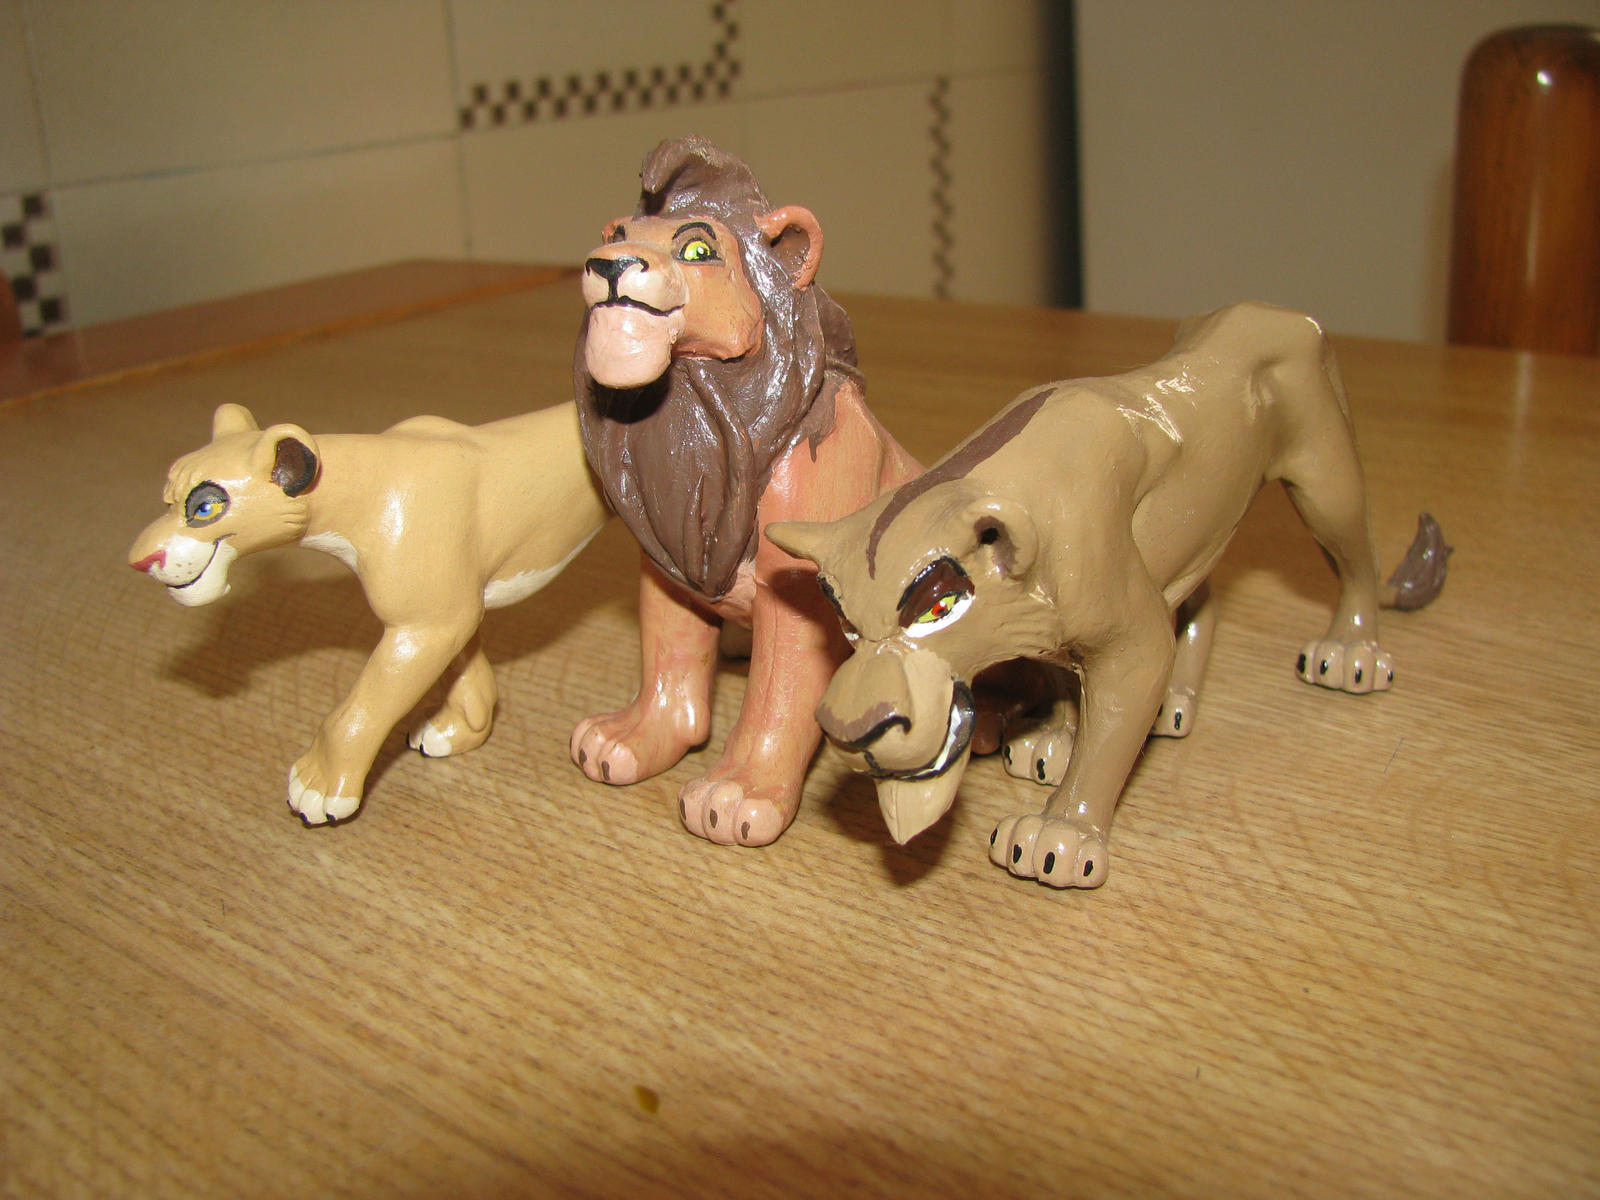 the lion king figure